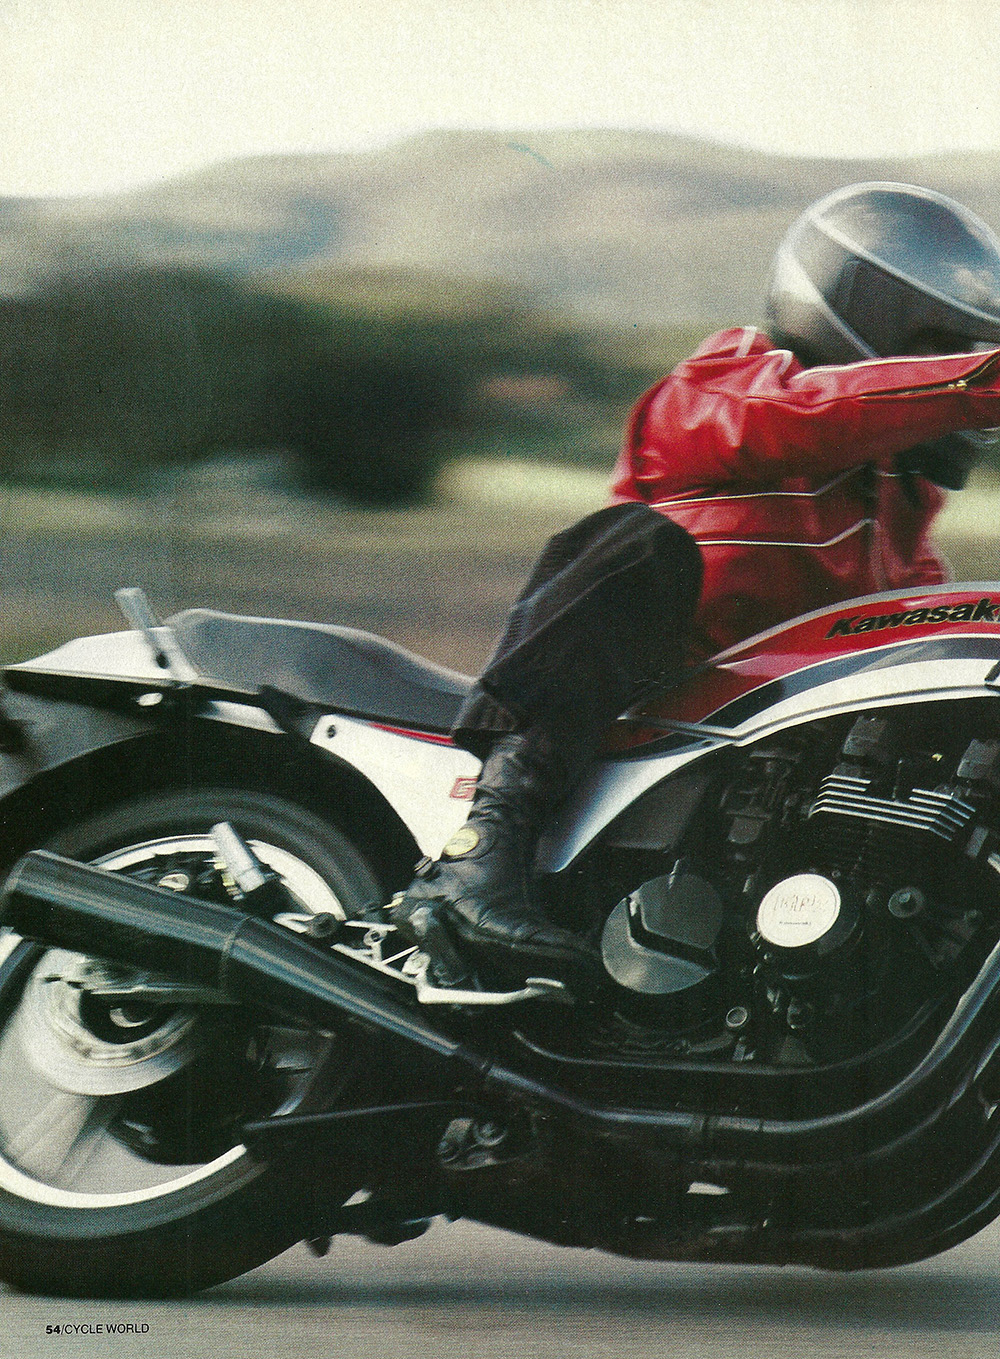 1984 Kawasaki GPz550 road test 03.jpg